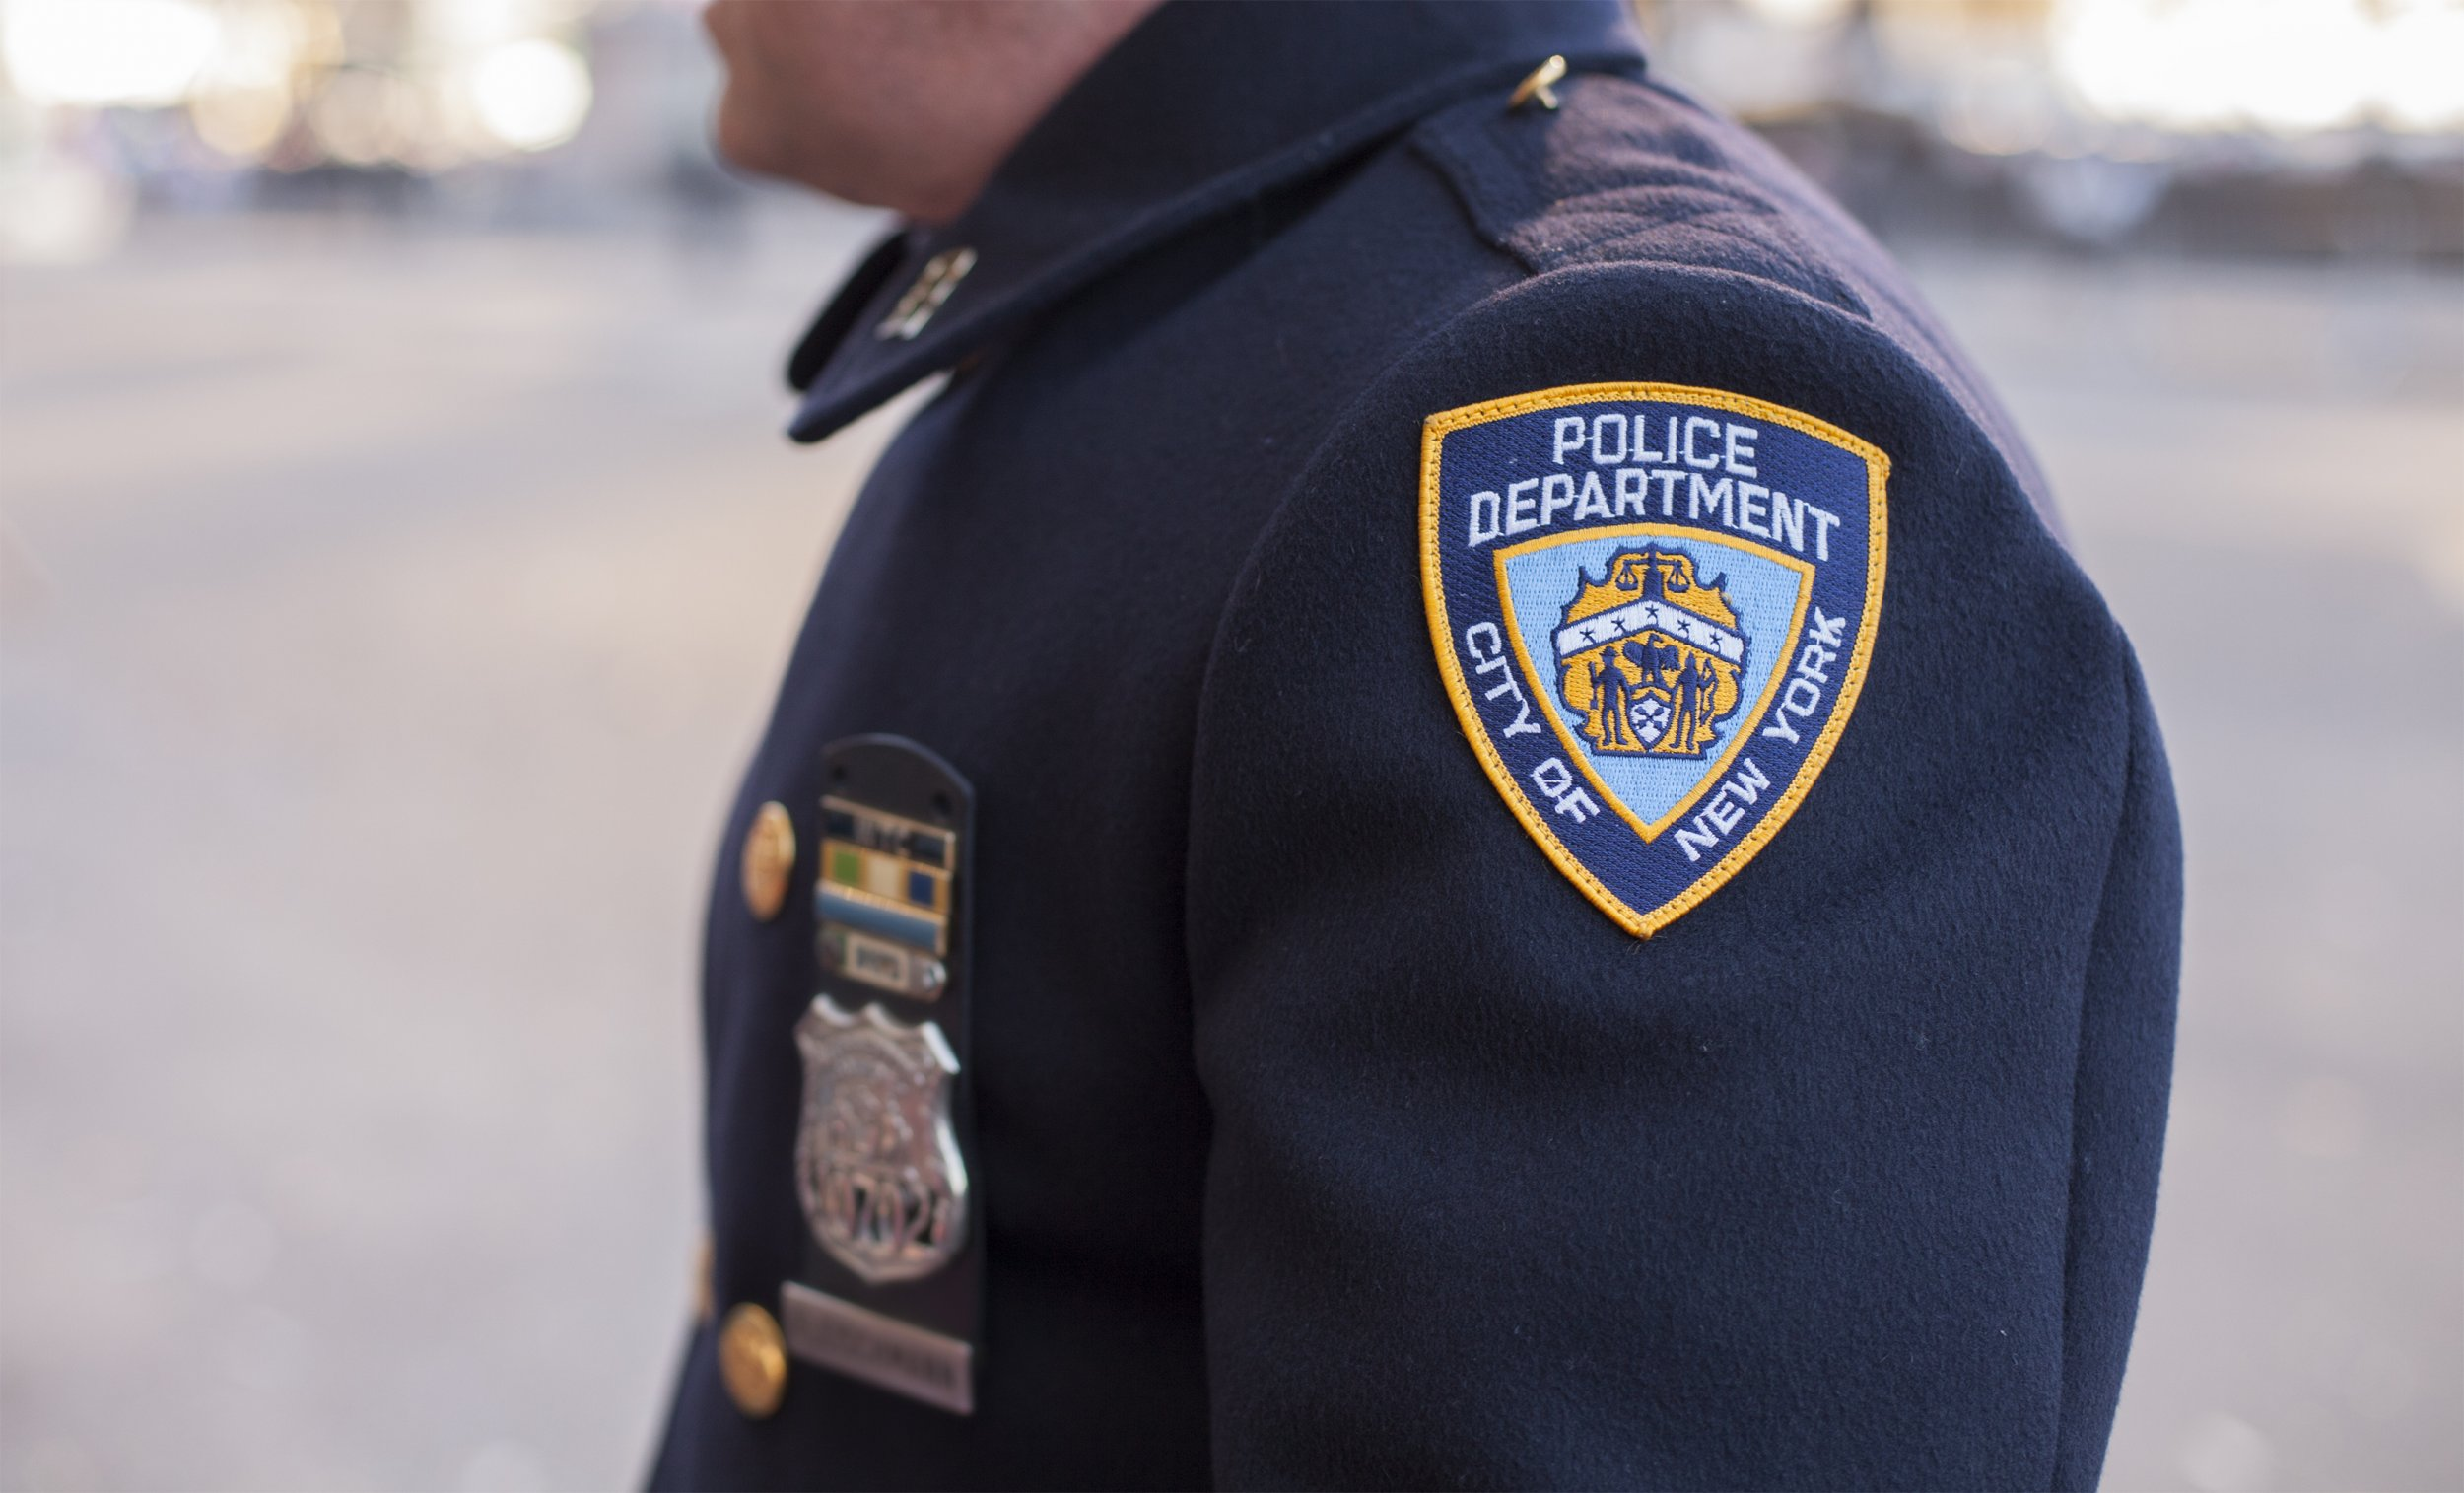 07_31_NYPD